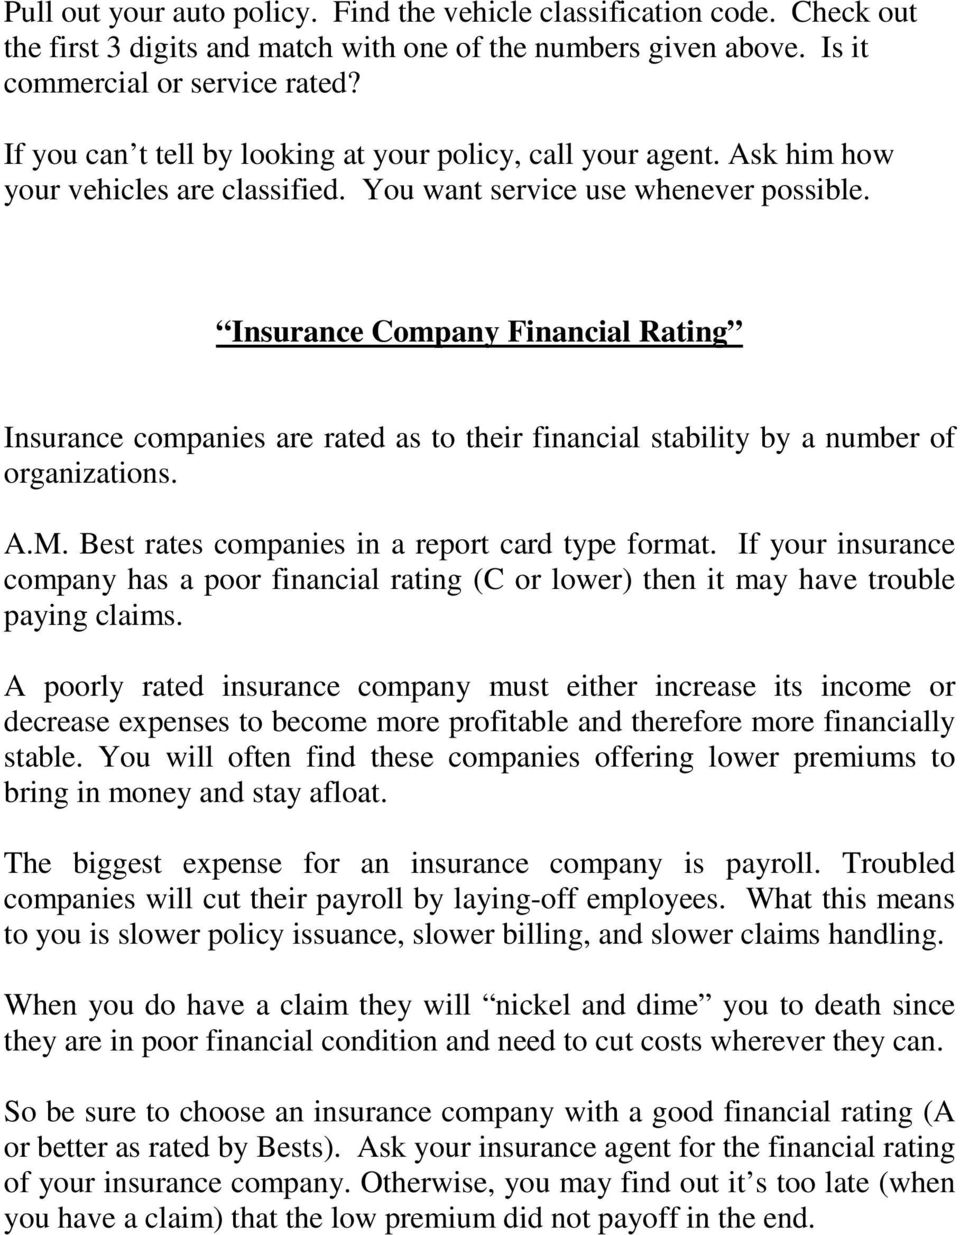 Insurance Company Financial Rating Insurance companies are rated as to their financial stability by a number of organizations. A.M. Best rates companies in a report card type format.